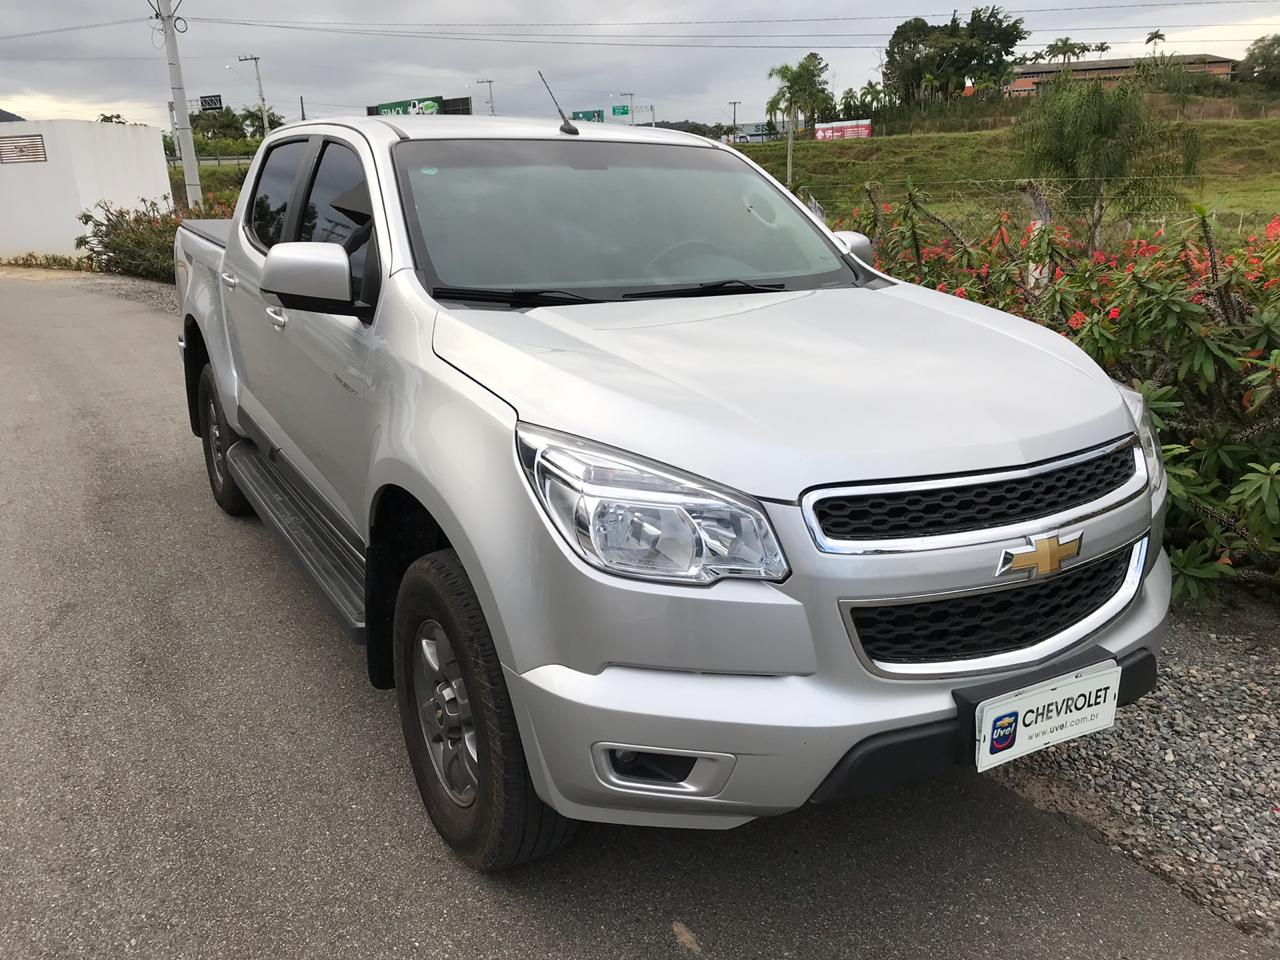 CHEVROLET S10 ADVANTAGE 2.0 2016